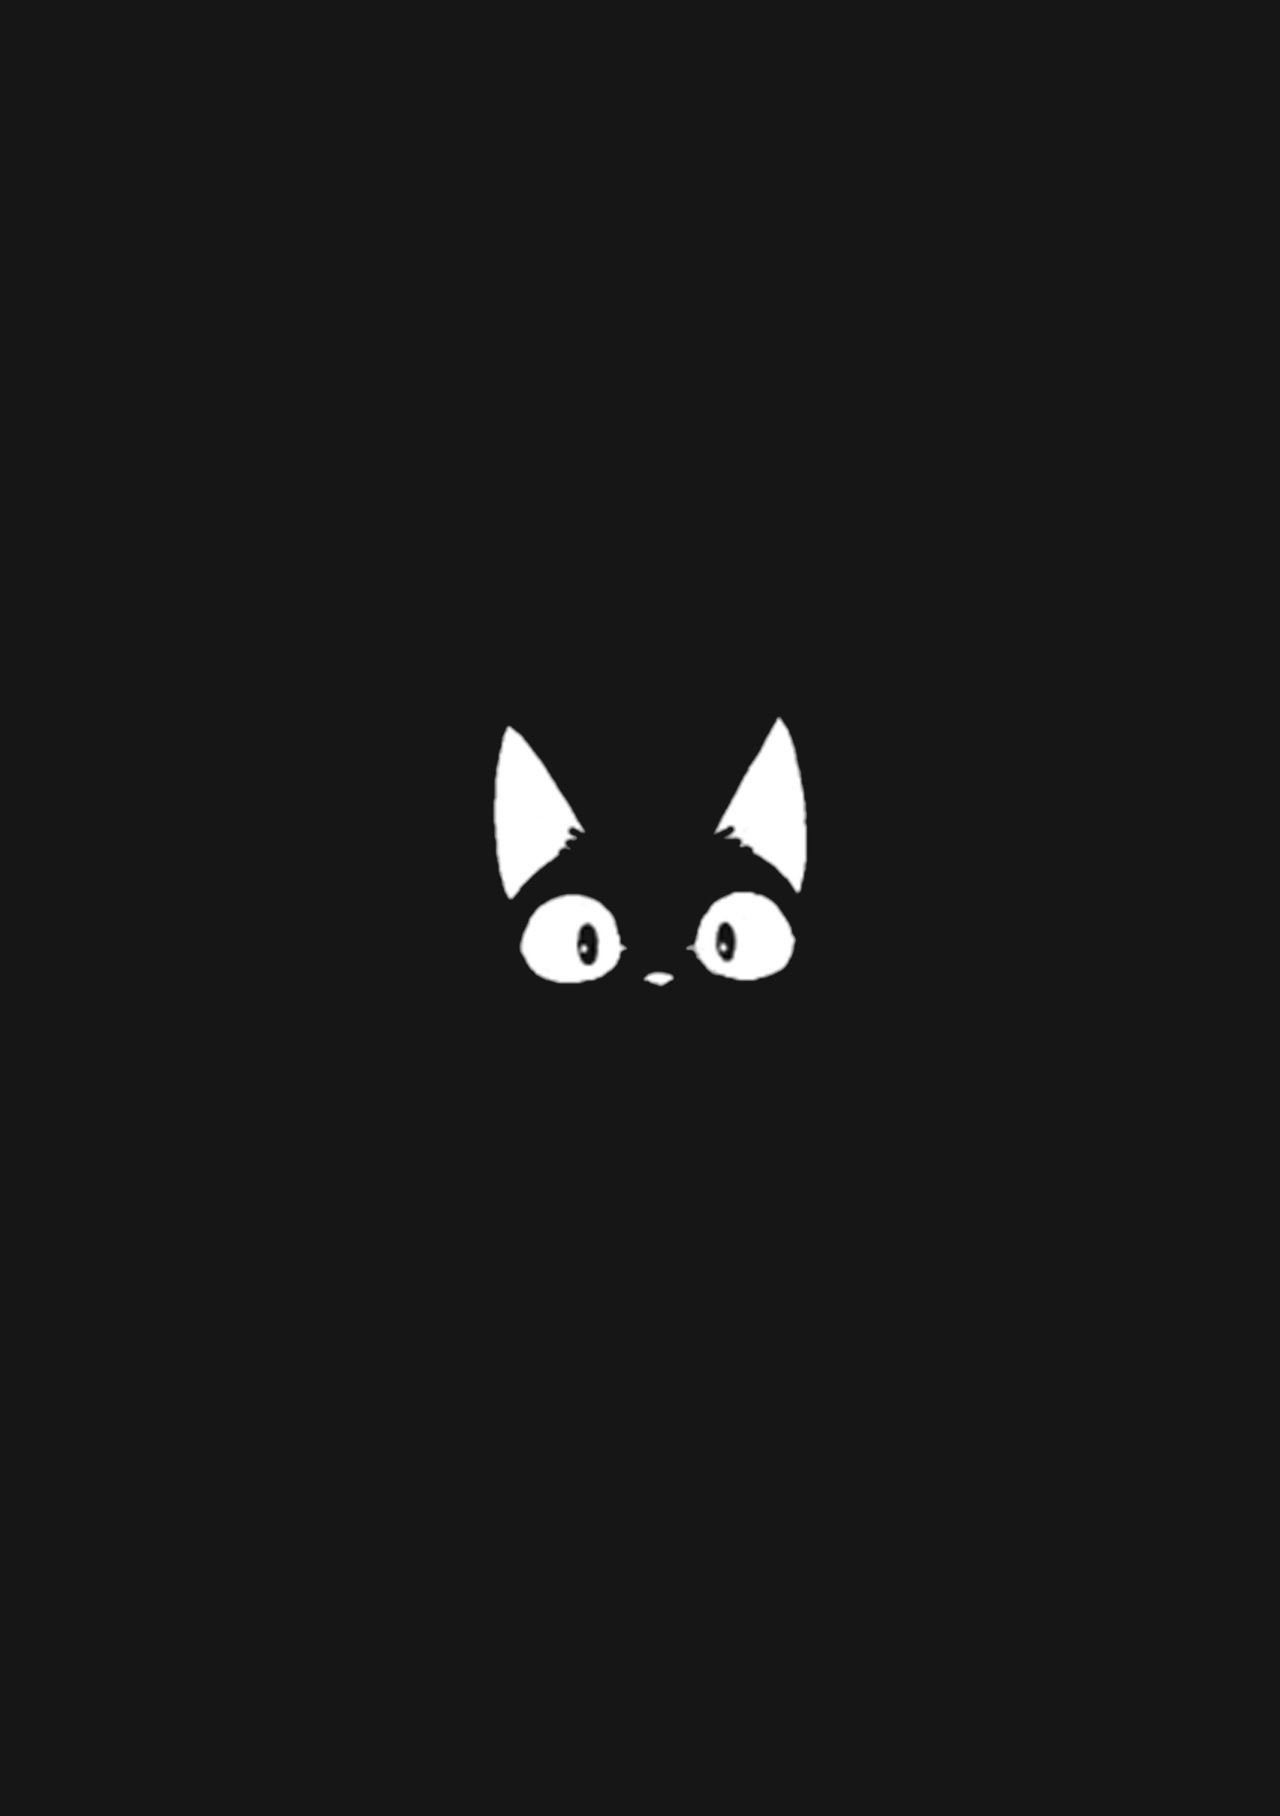 Kitten iphone wallpaper tumblr - 15 Quick And Cute Diy Ideas For Black Cat Lovers